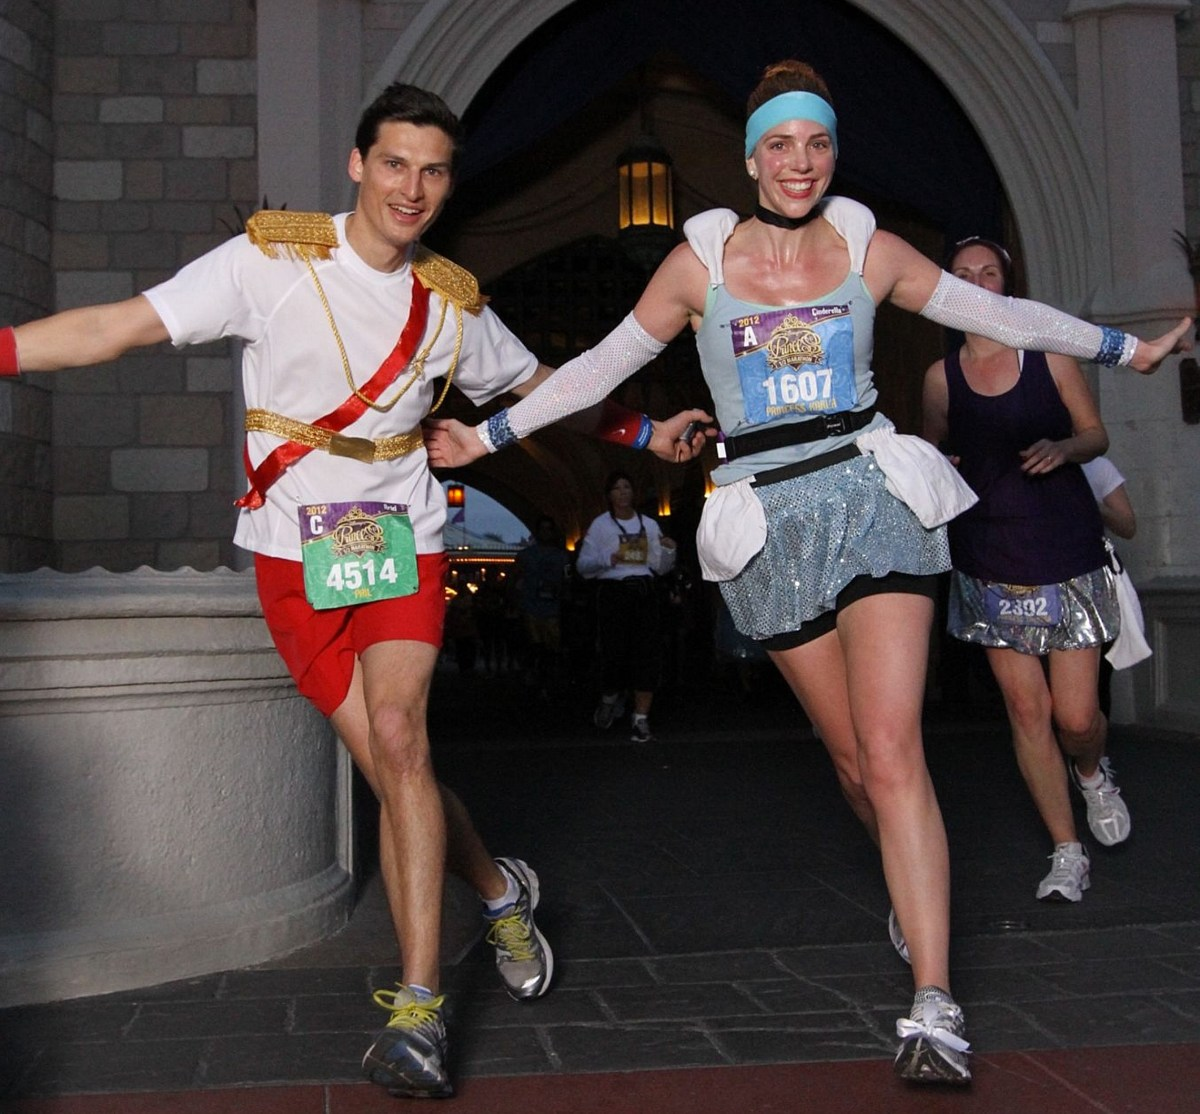 How To Make Cinderella & Prince Charming Disney Running Costumes